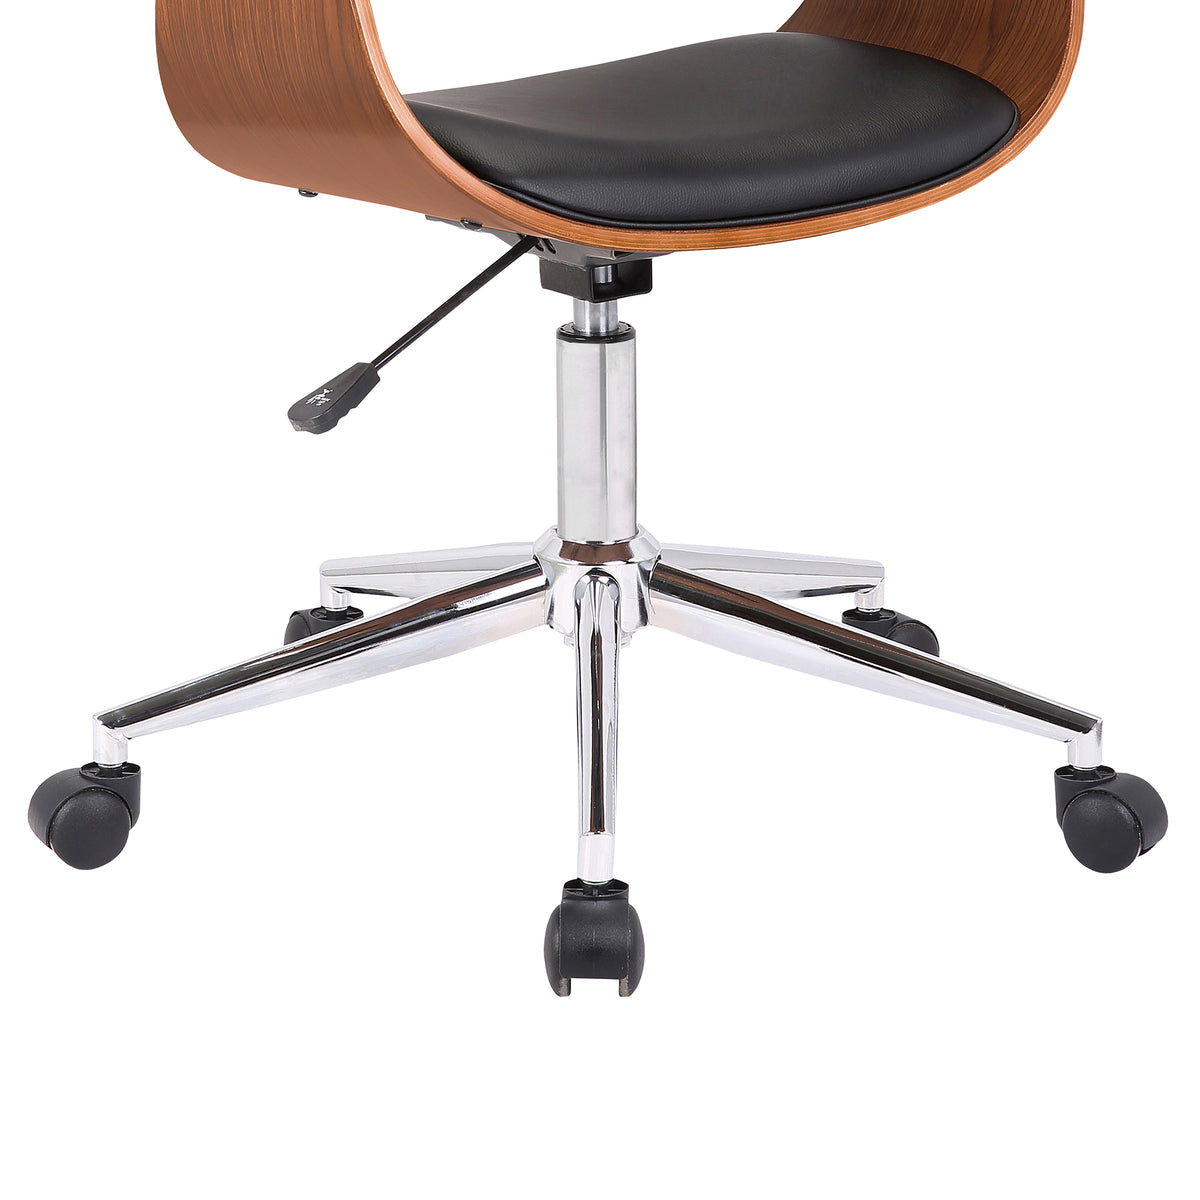 Nord Office Chair Black and Walnut